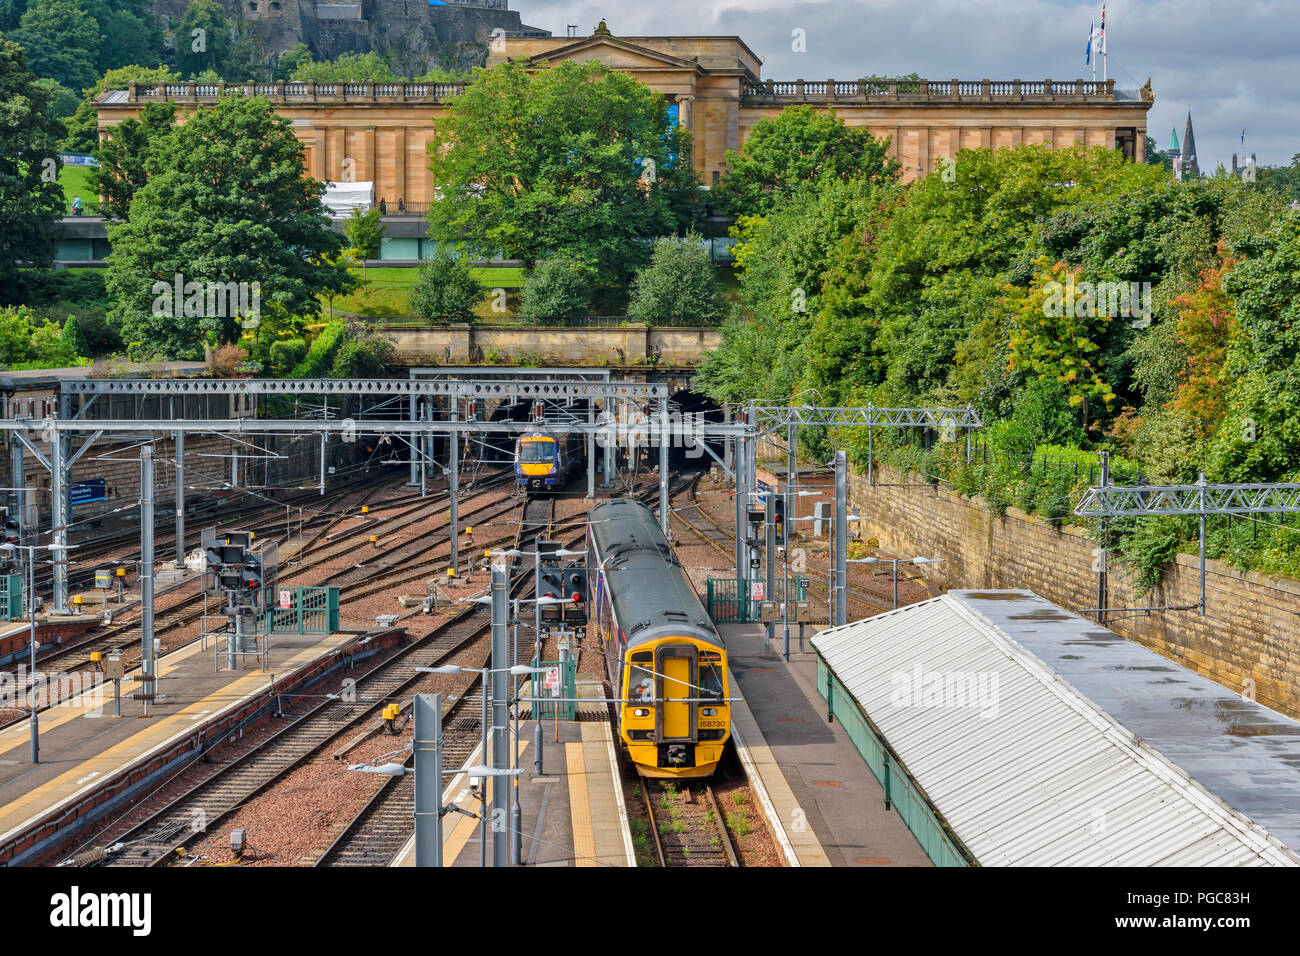 EDINBURGH SCOTLAND WAVERLEY STATION AND TRAINS WITH THE SCOTTISH NATIONAL GALLERY - Stock Image